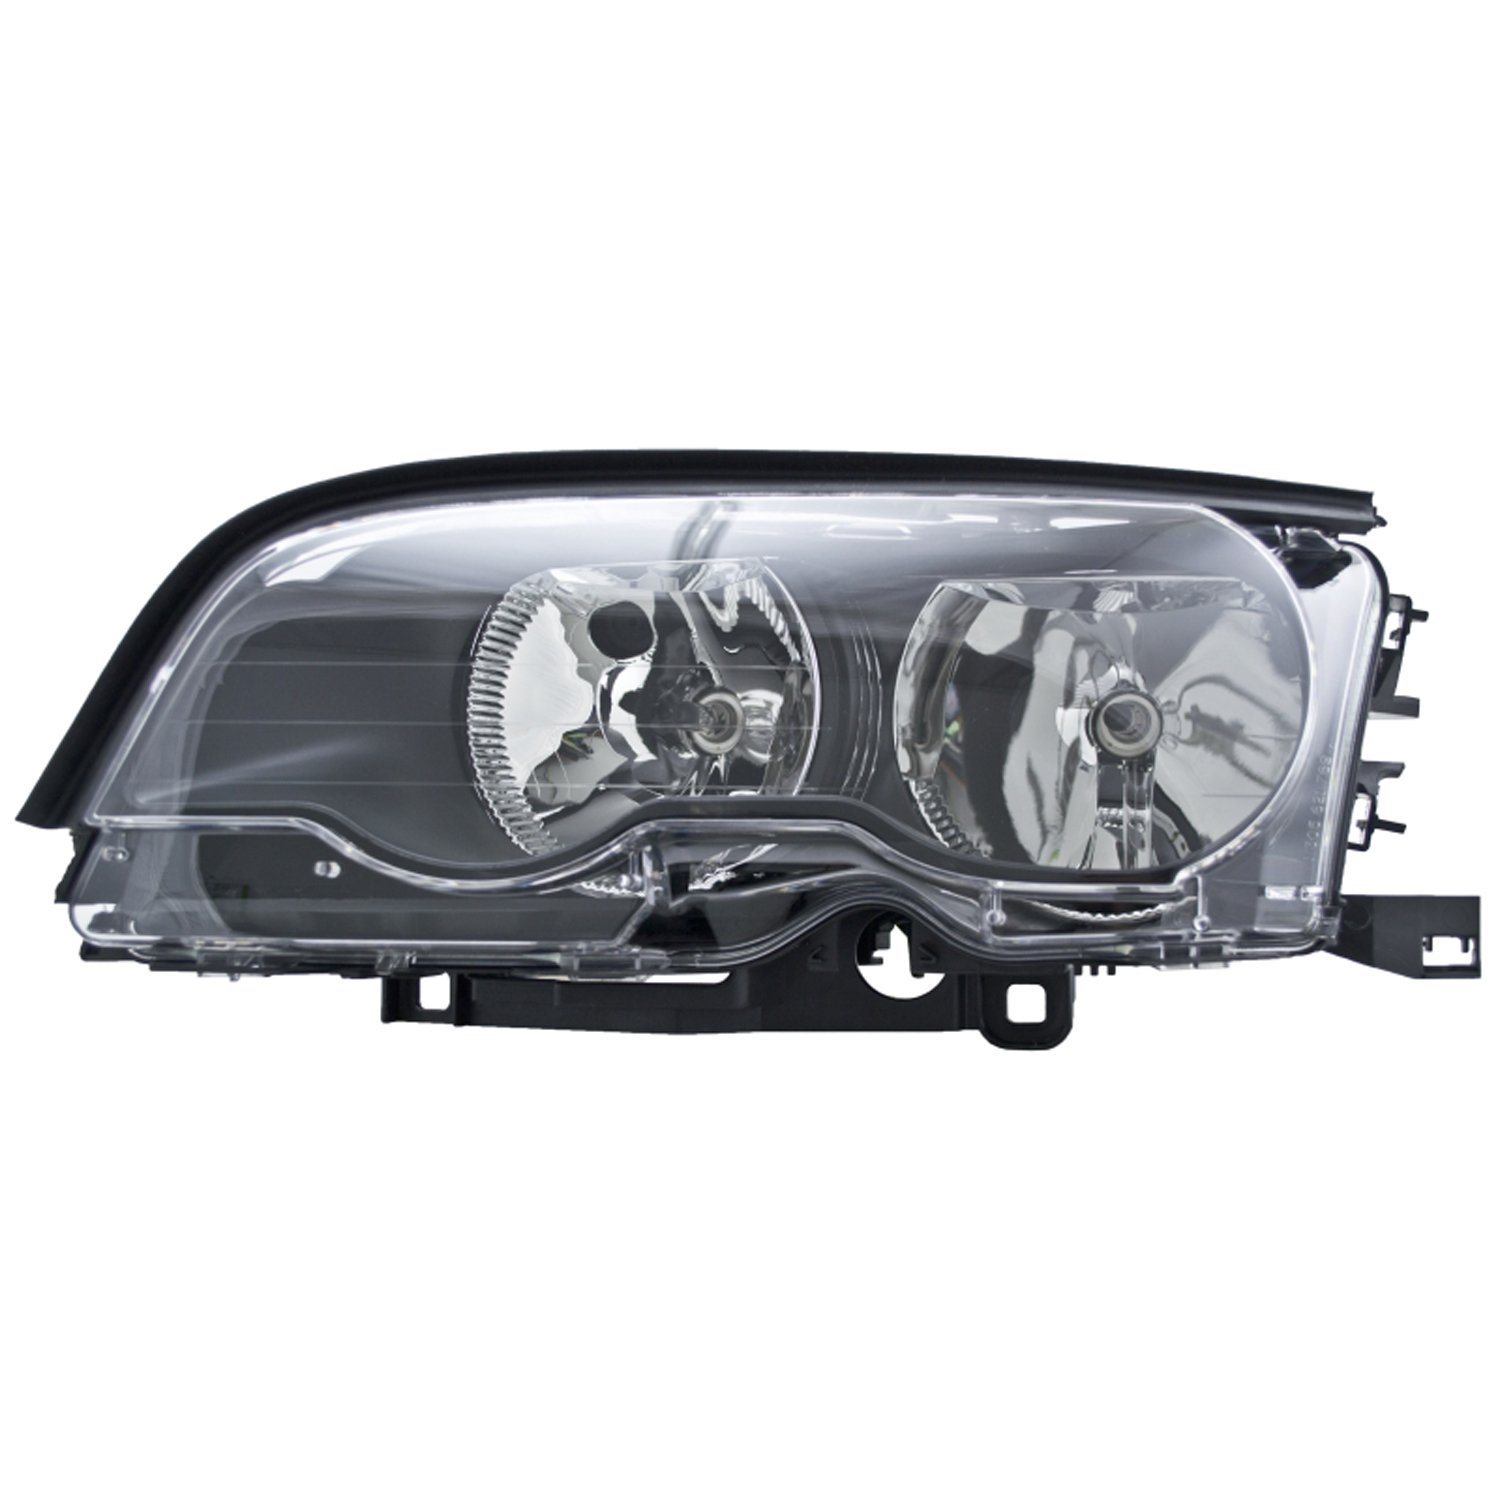 BMW 3 SERIES CONVERTIBLE PartsChannel KEYBM2502112 OE Replacement Headlight Assembly